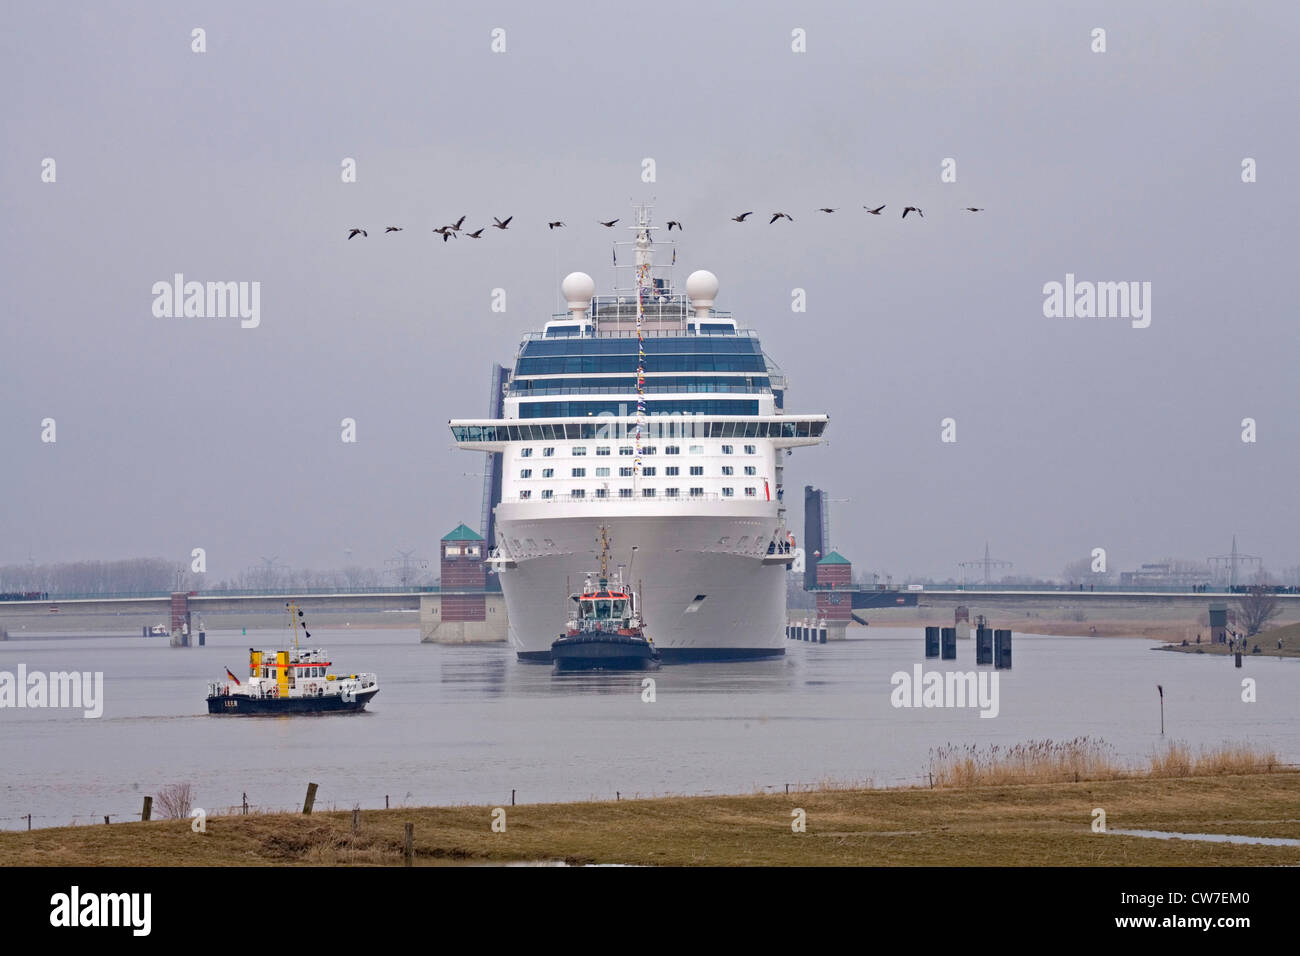 Celebrity eclipse cruise to cork